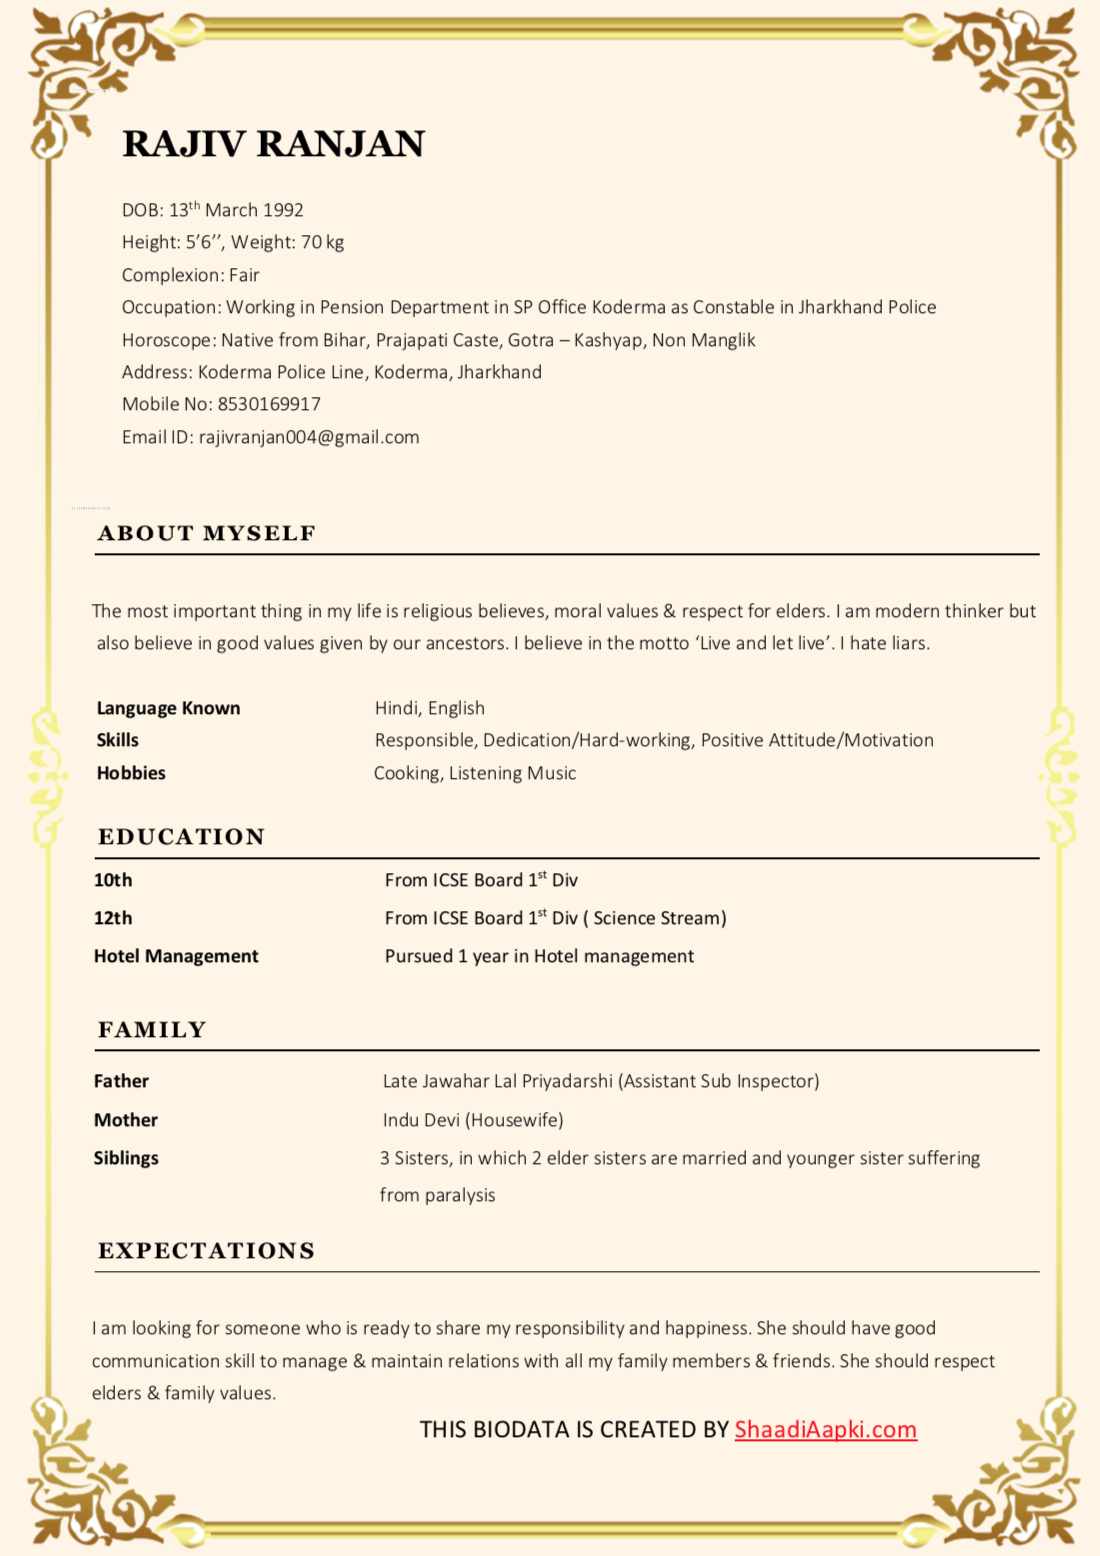 Bio11 creative premium marriage biodata with border template